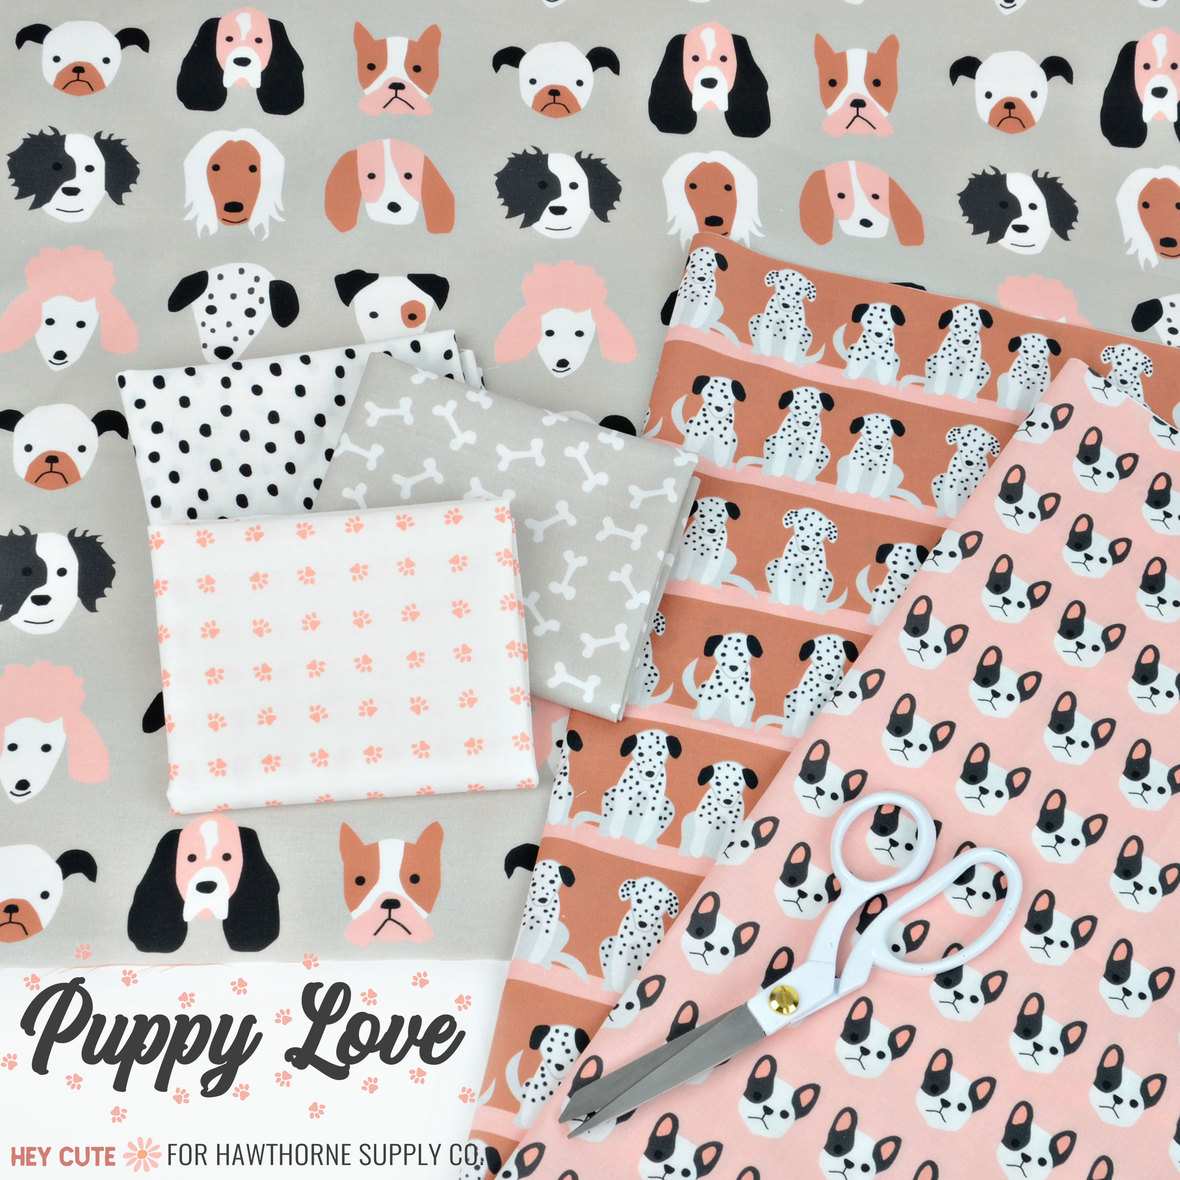 Puppy-Love-by-Hey-Cute-Design-at-Hawthorne-Supply-Co